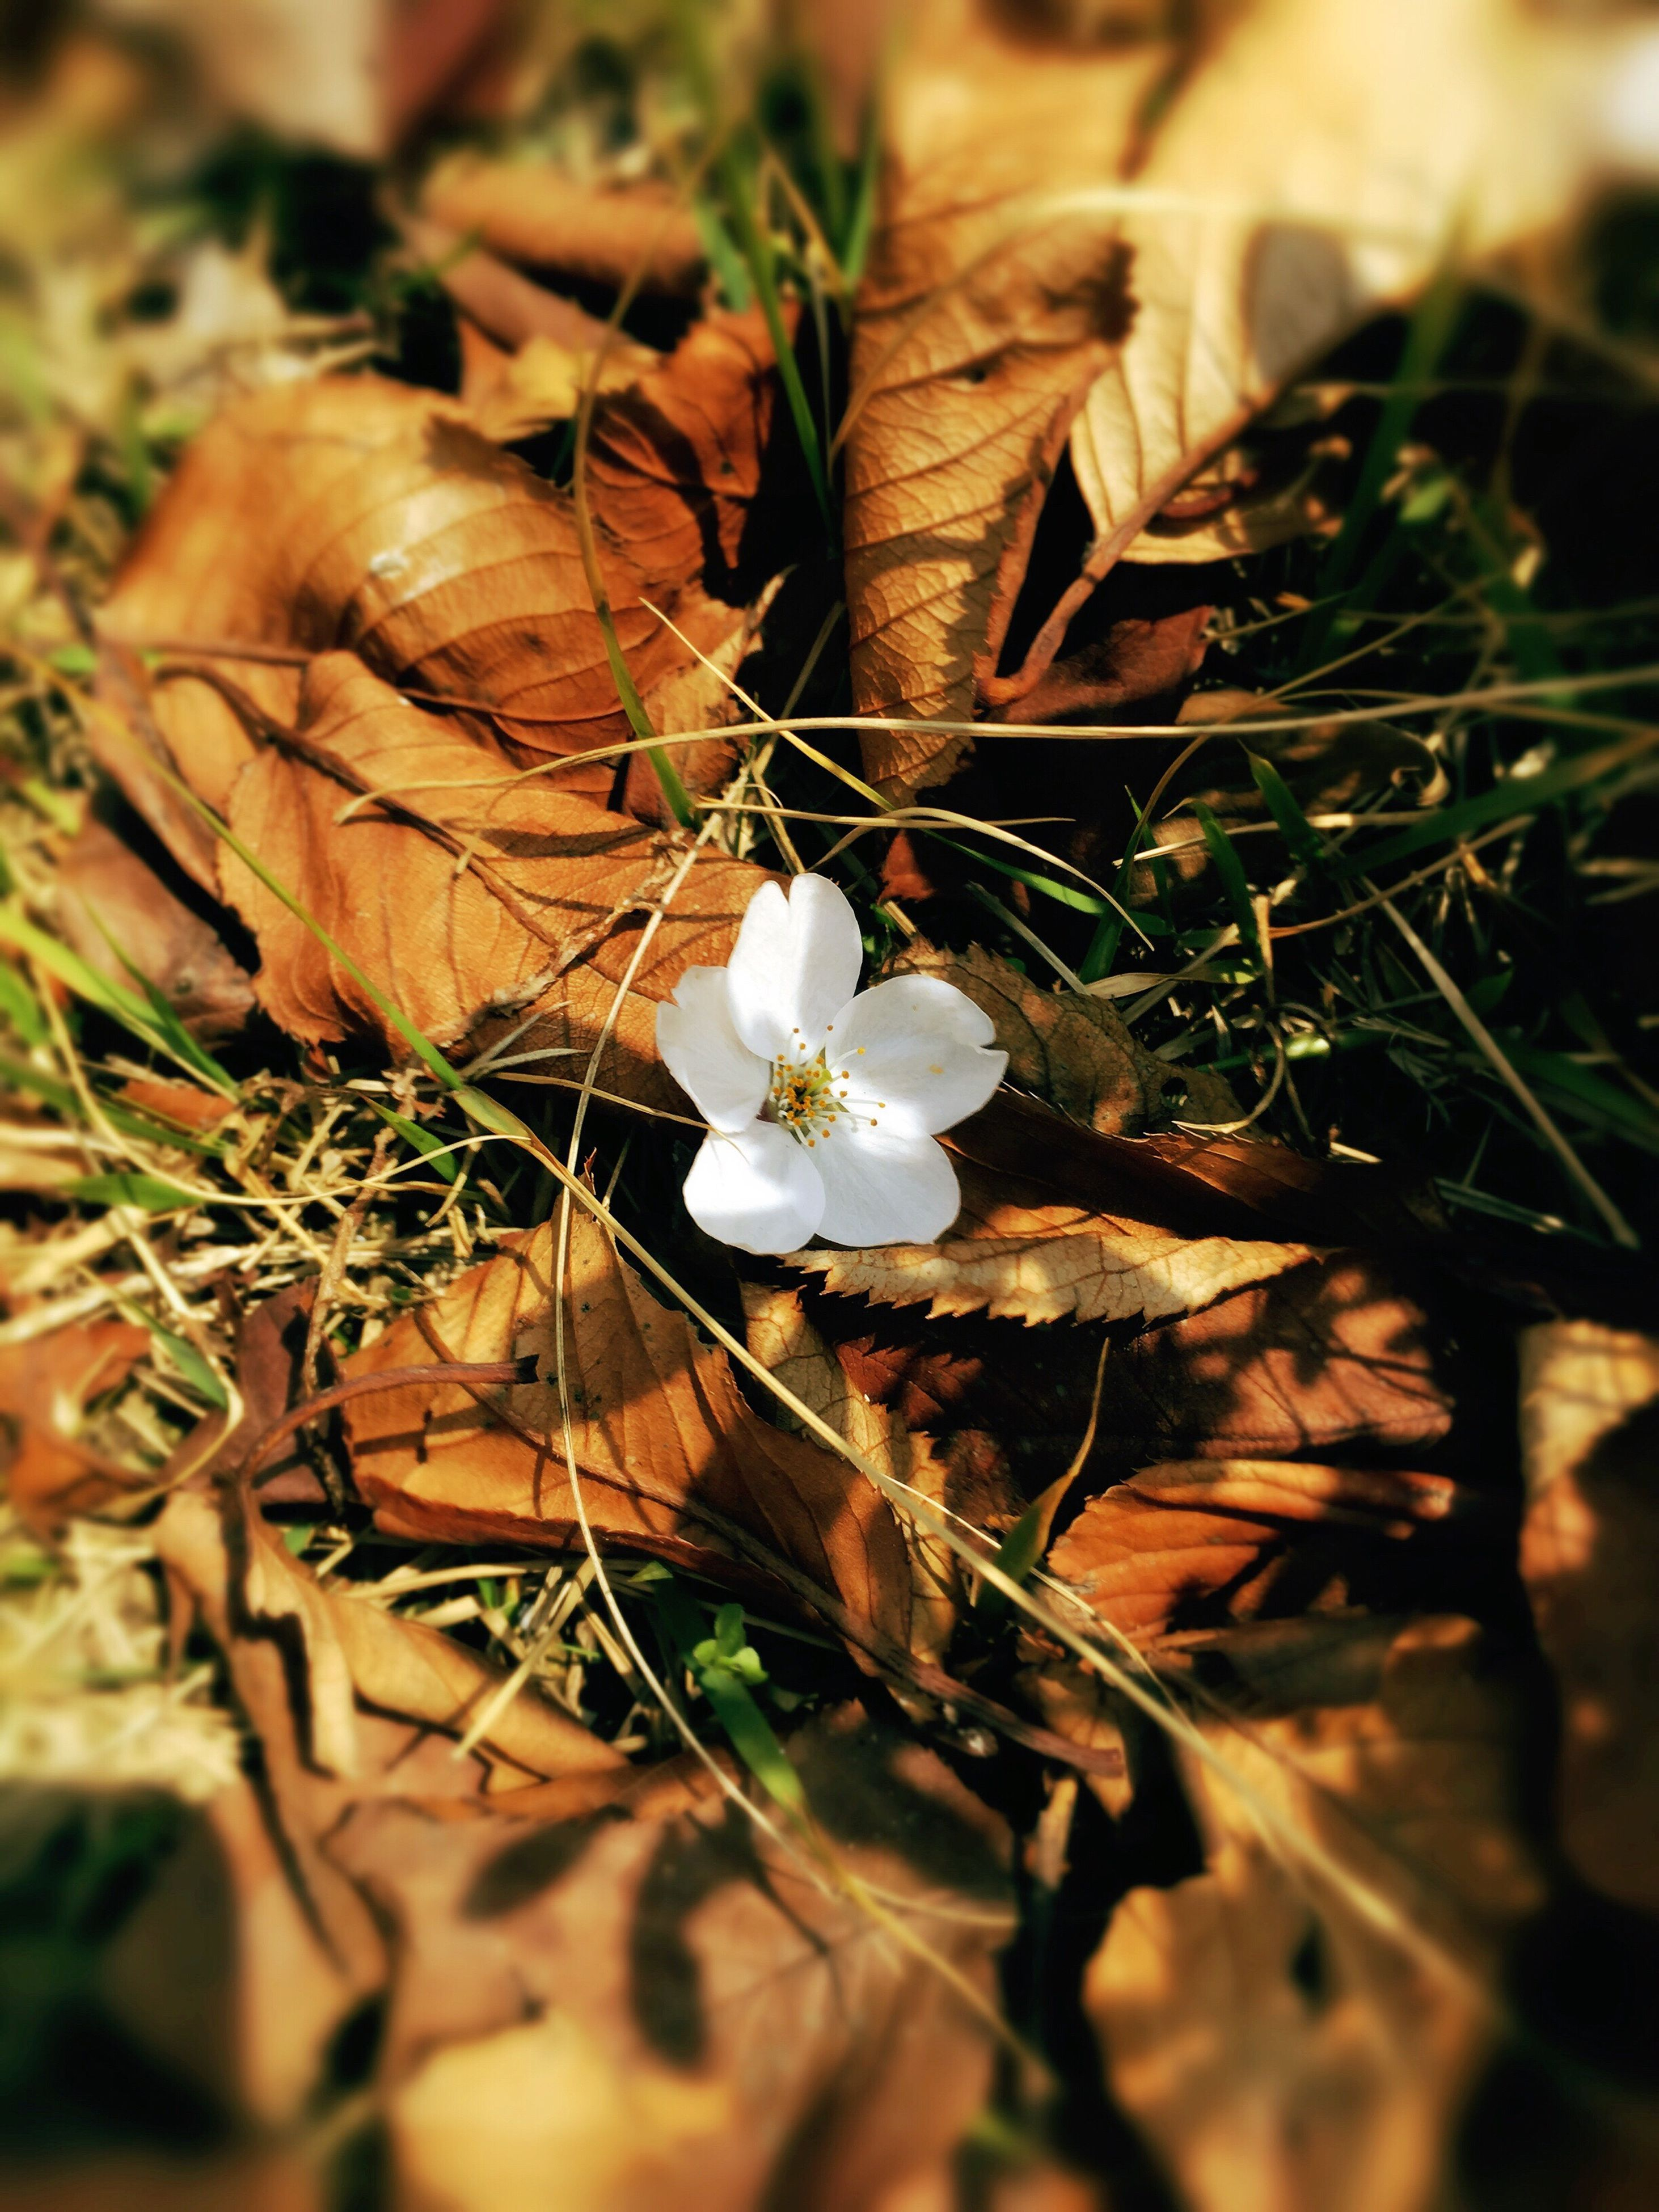 nature, leaf, plant, growth, outdoors, close-up, no people, fragility, beauty in nature, freshness, day, flower head